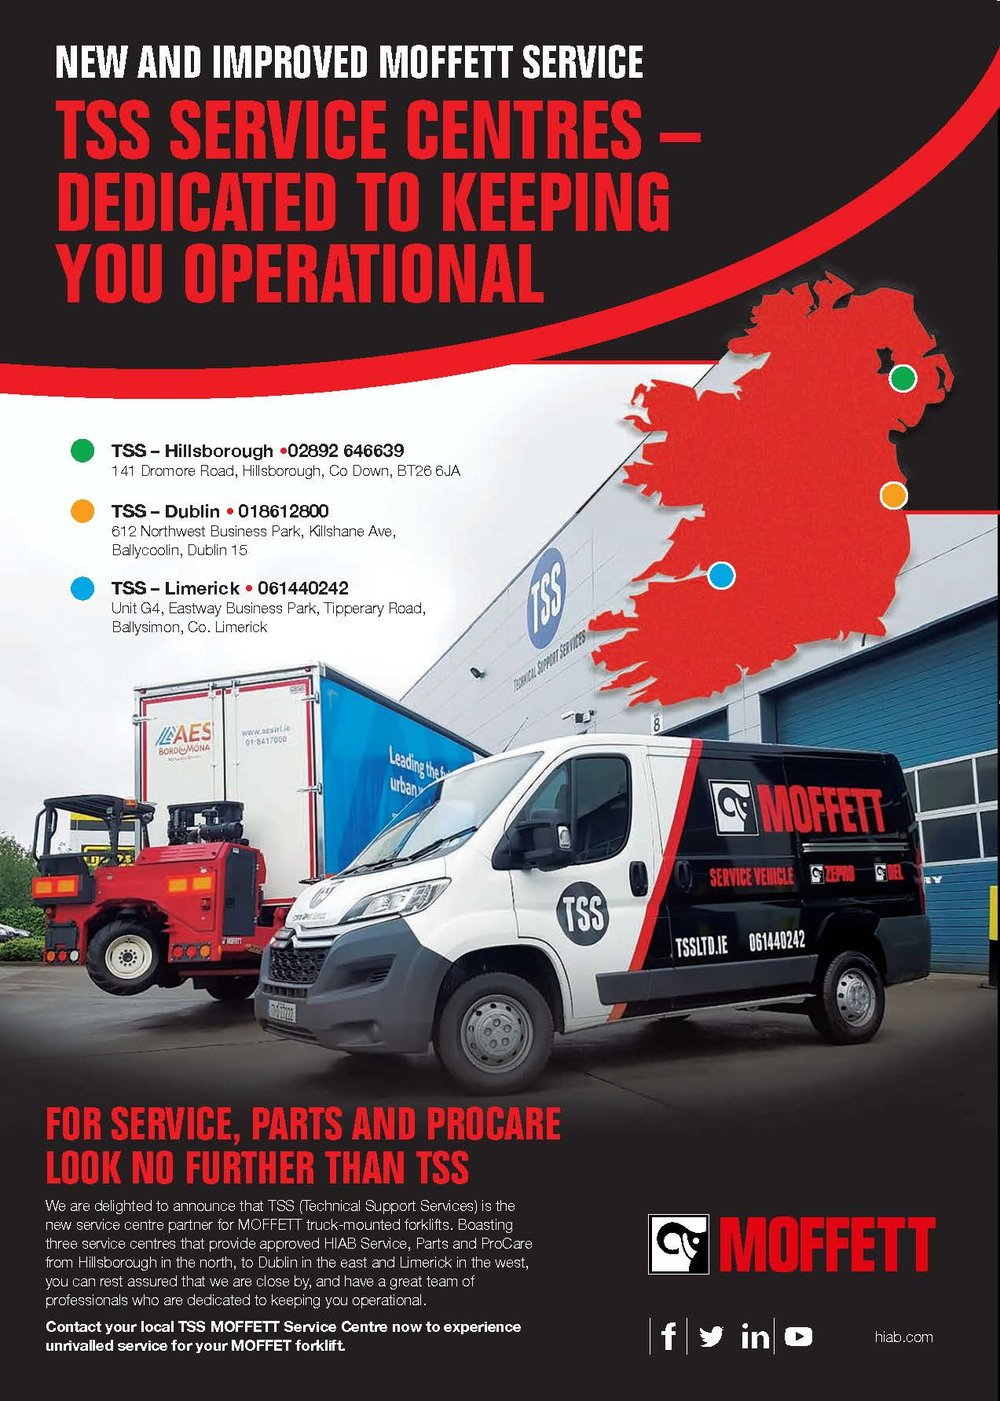 tss-ltd-moffett-truck-mounted-forklift-service-agent-for-ireland